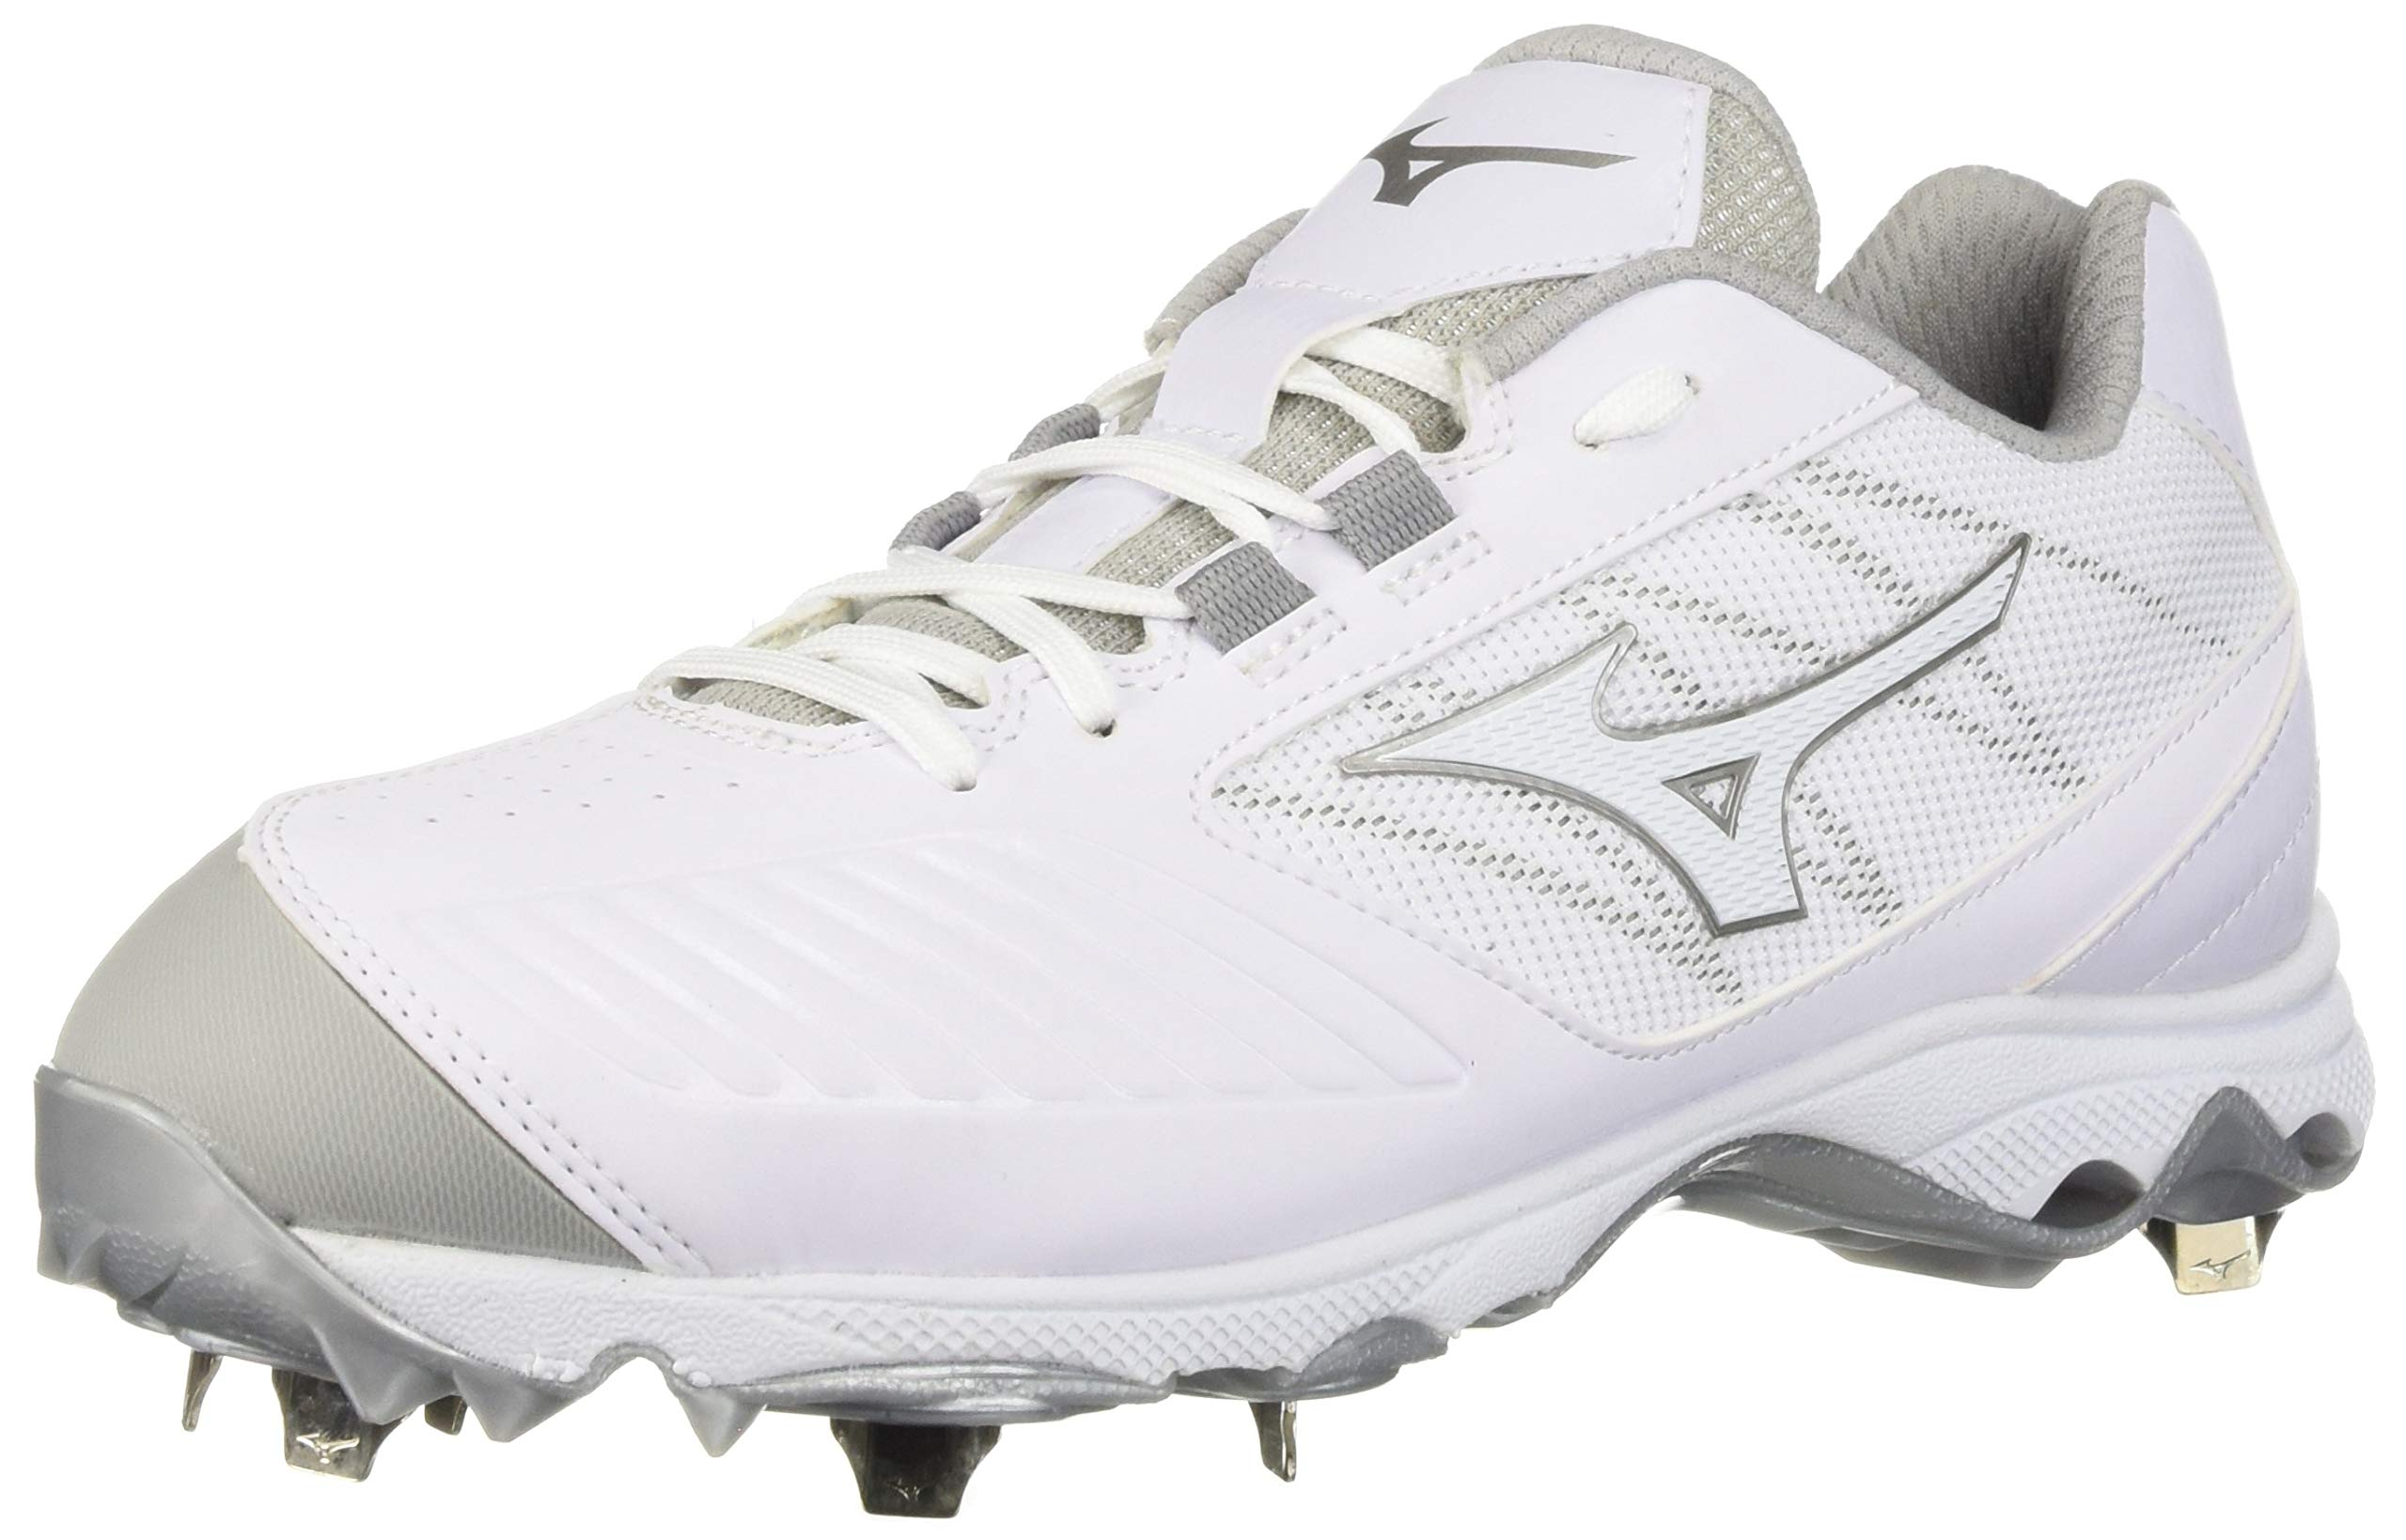 9-SPIKE ADVANCED SWEEP 4 10.5 White